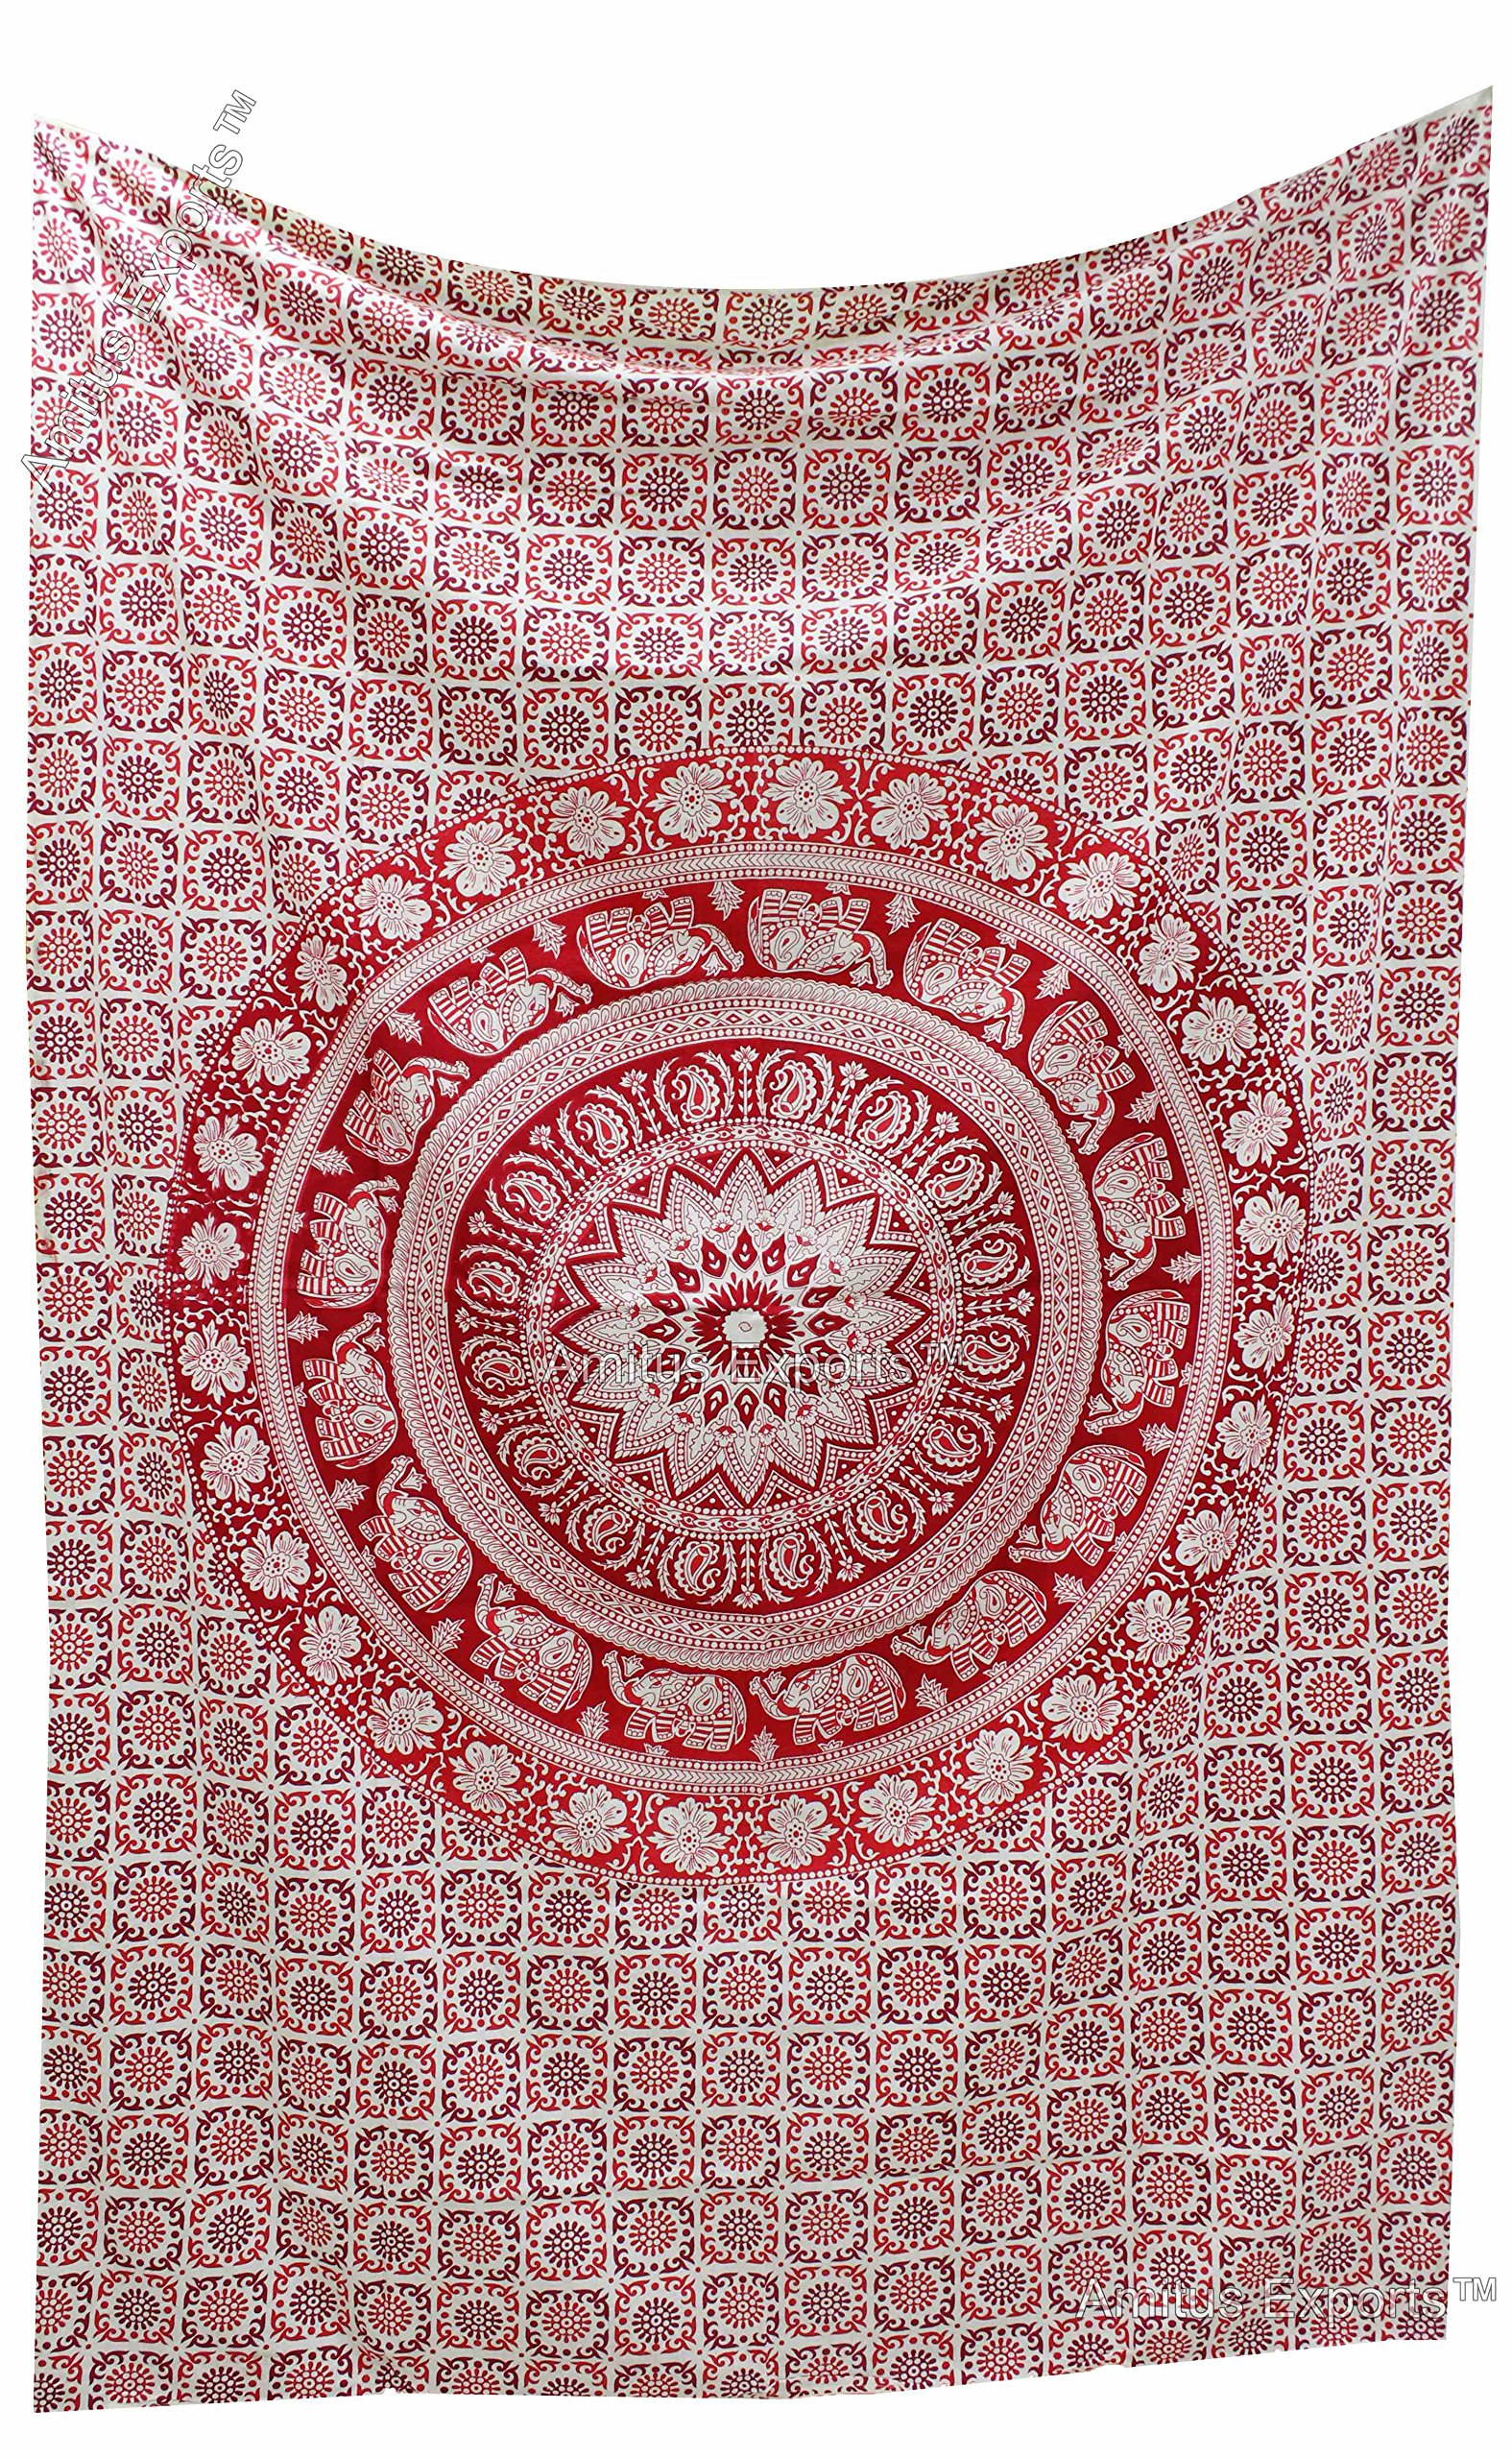 Amitus Exports TM Premium Quality 1 X Round Ombre Red Color 81''X52'' (Approx.) Inches Twin Size Indian Mandala Tapestry Thin Cotton Fabric Throws (Handmade In India)